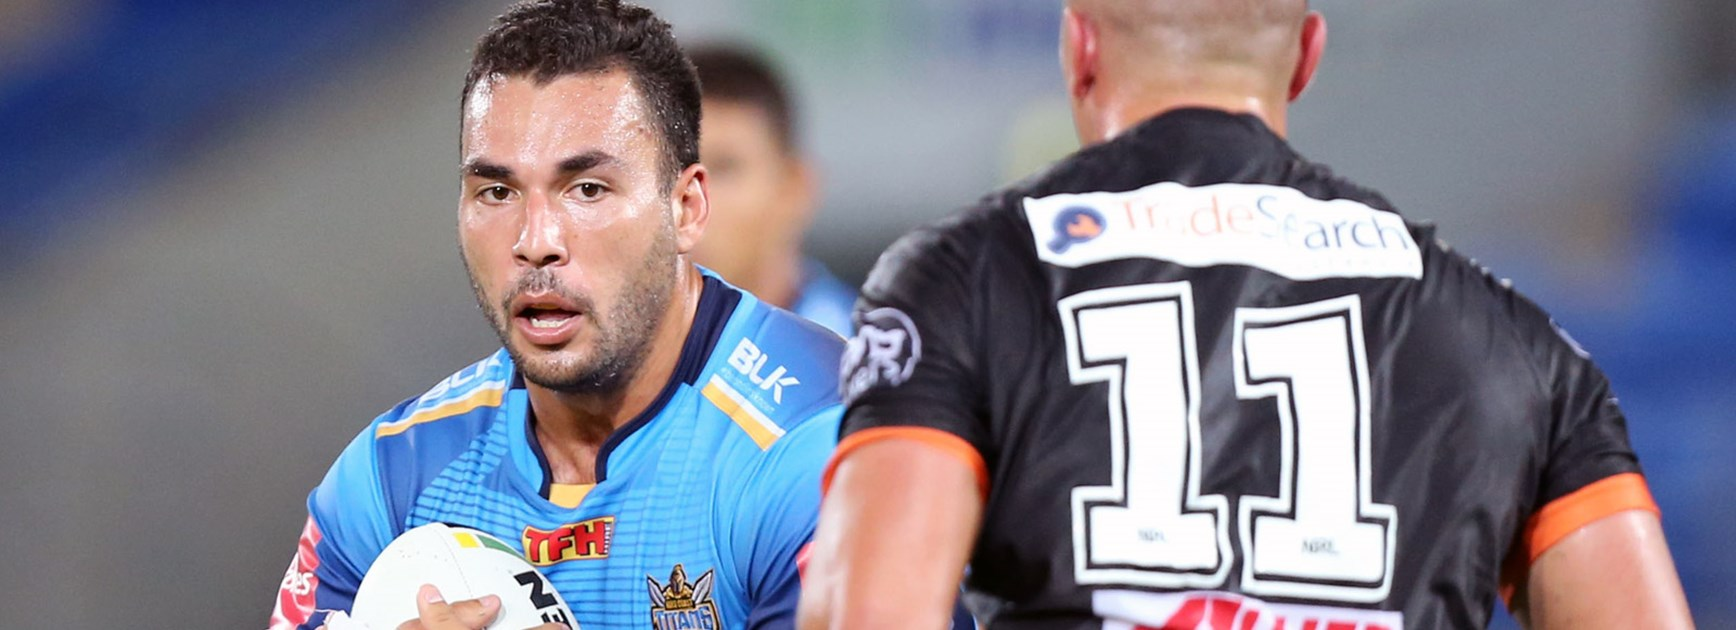 Ryan James in action for the Titans against Wests Tigers.